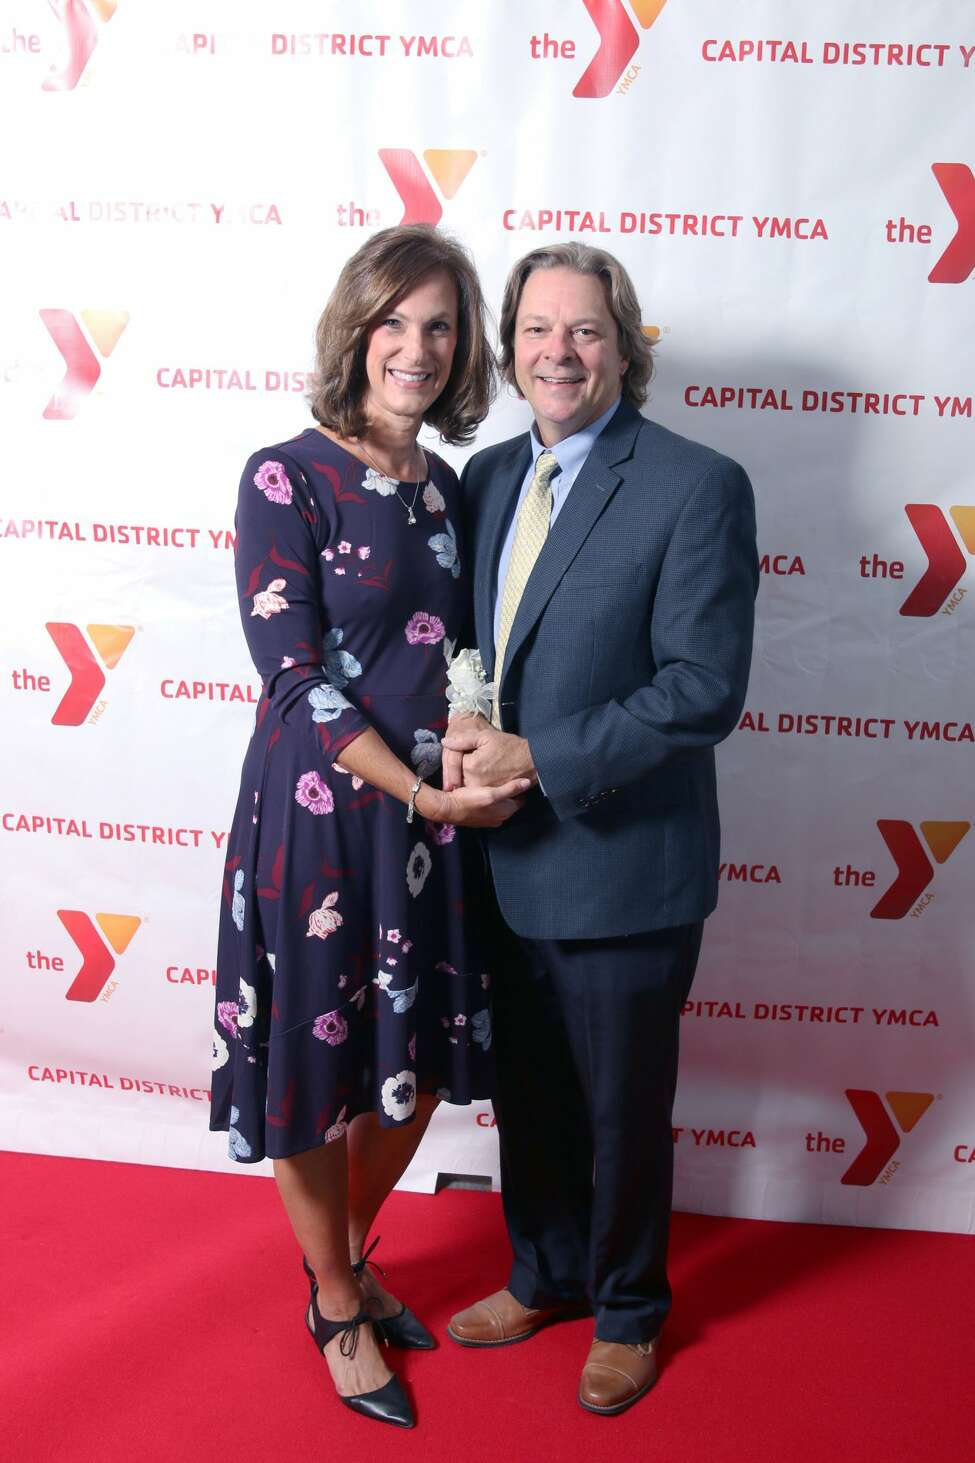 Were you Seen at the Capital District YMCA's President's Awards Ceremony on April 12th, 2018, at the Albany Marriott?